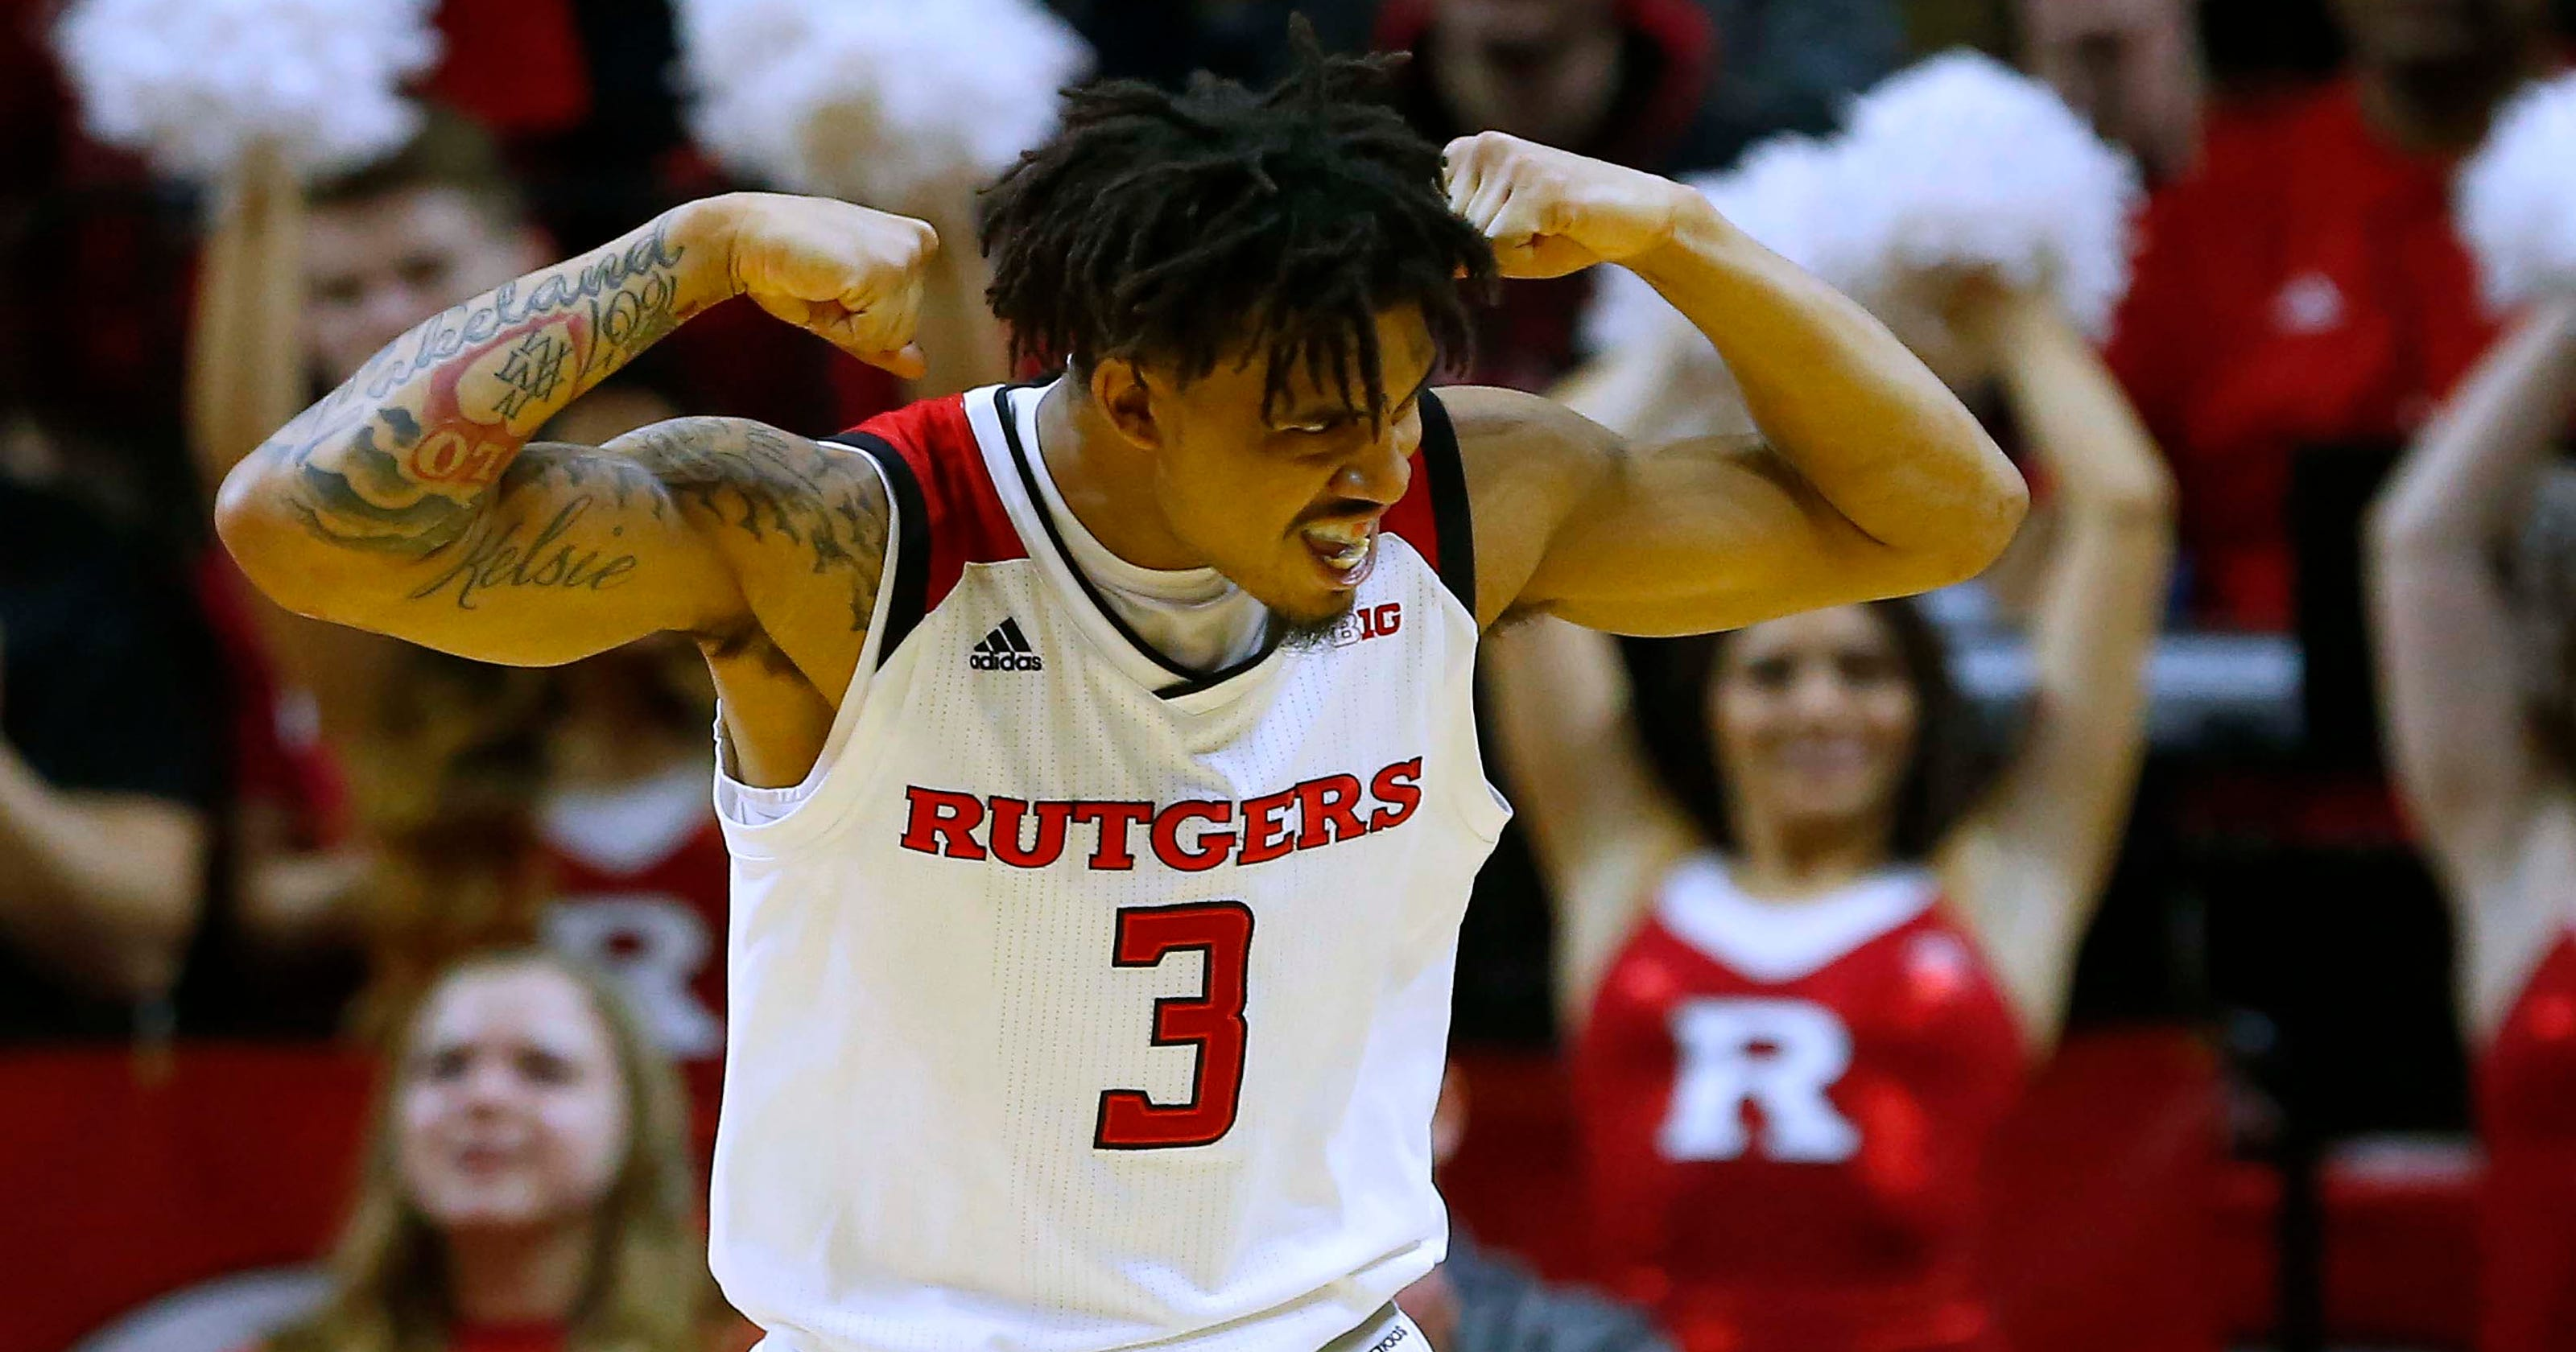 334d0bdc990a Rutgers basketball  Ace guard Corey Sanders turns pro